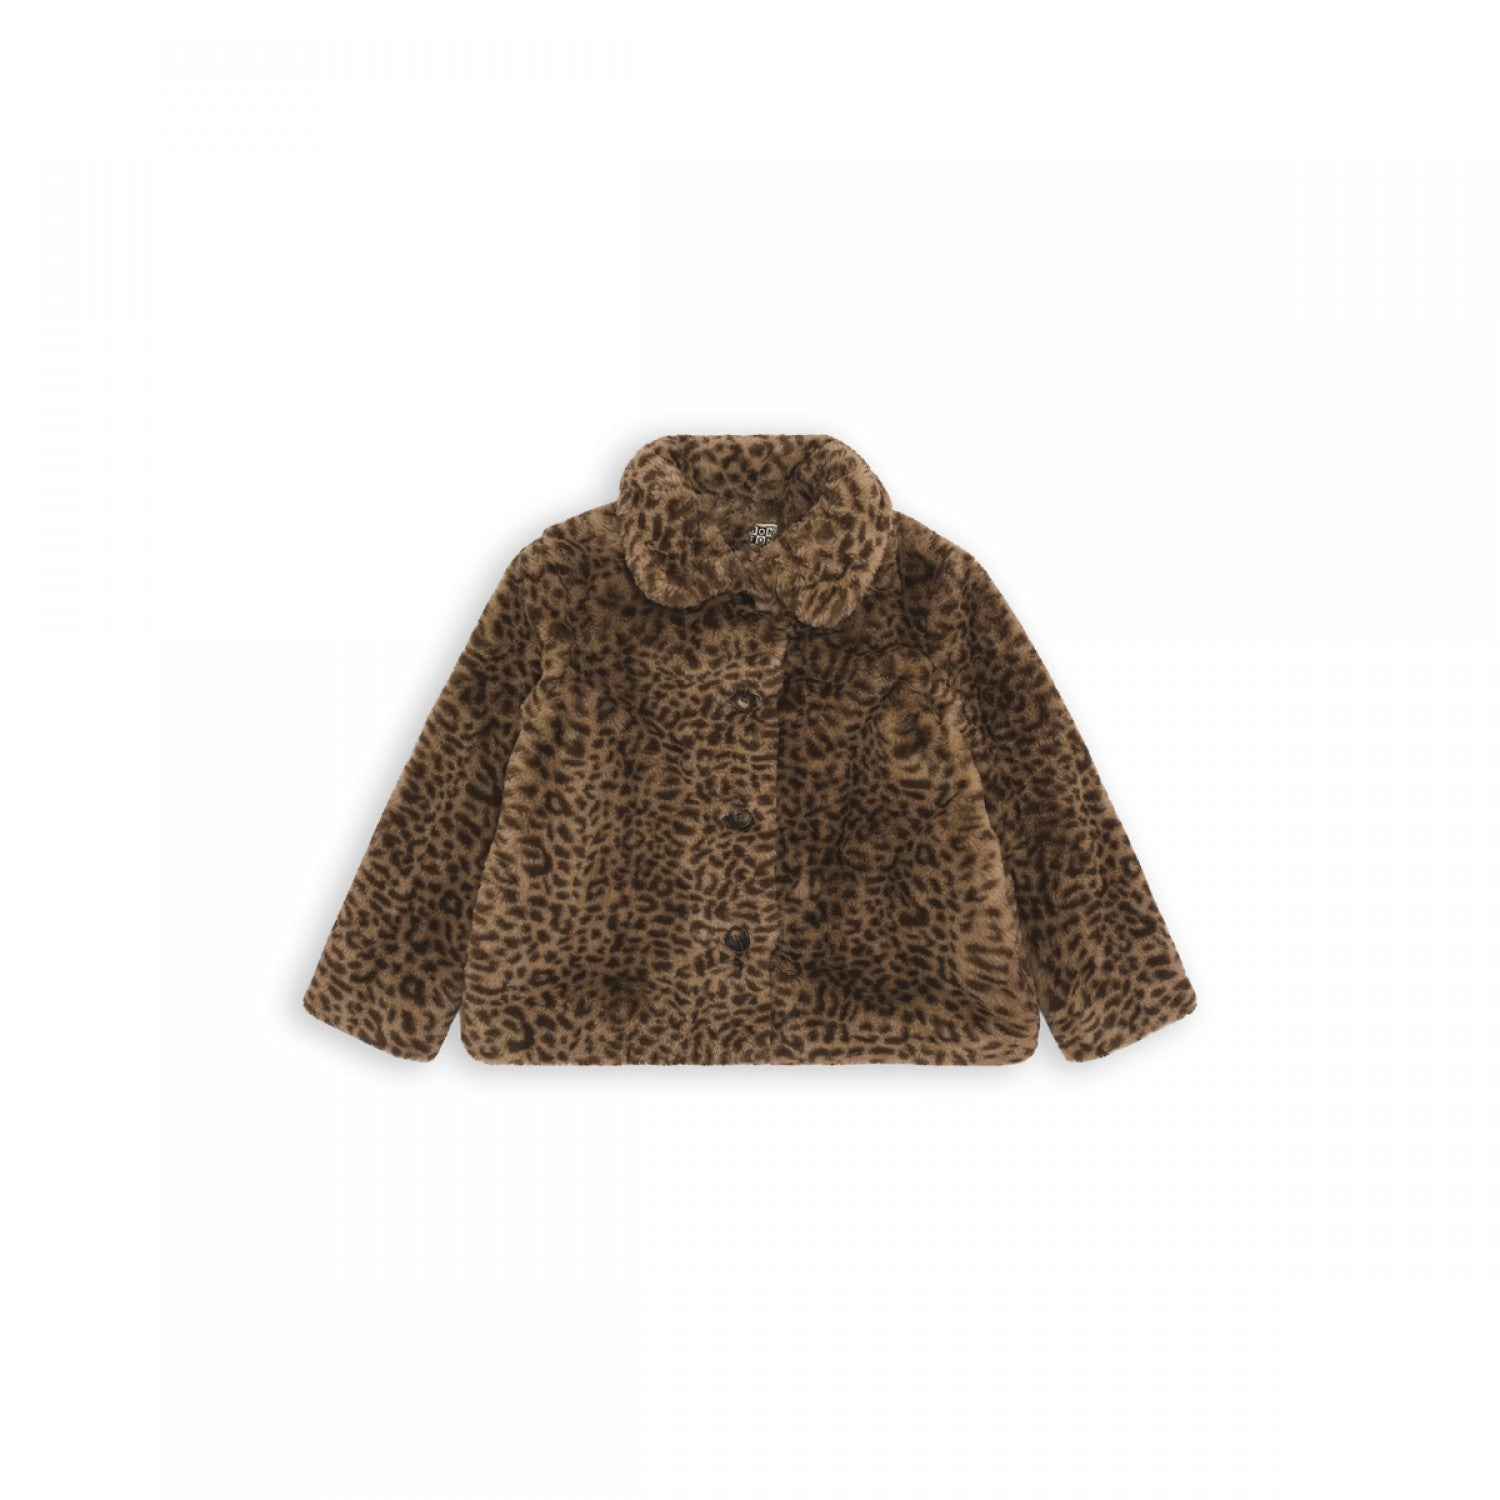 Bonton Leopard Fur Coat - Ladida